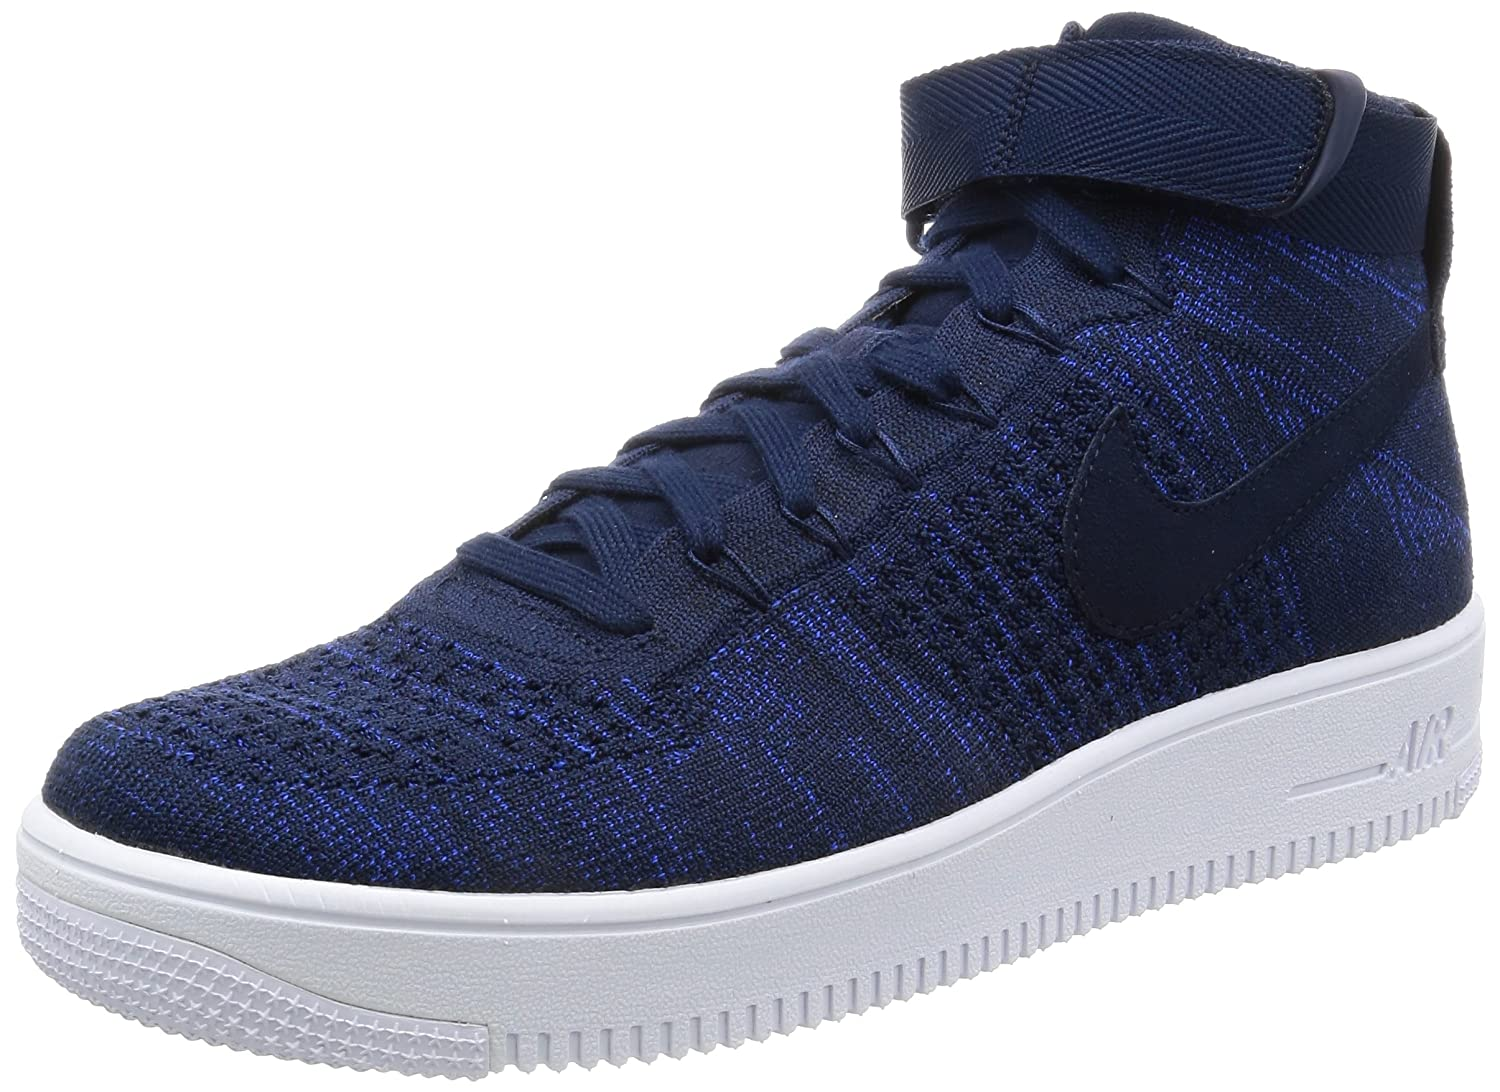 best service 9c17a e7dd7 Nike Air Force 1 Ultra Flyknit Mid College Navy